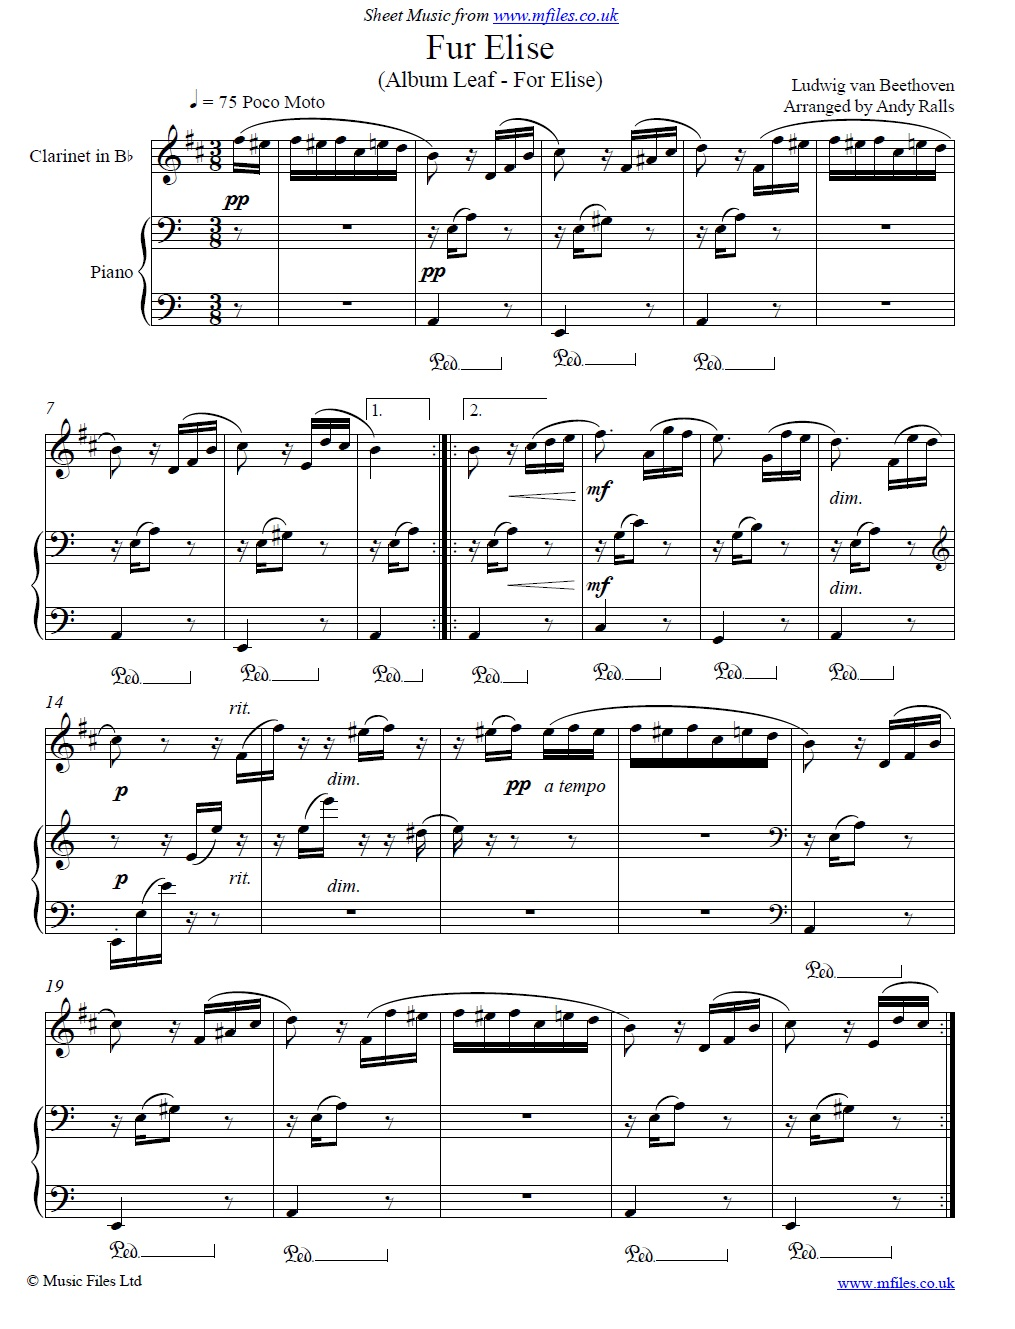 Beethoven's Fur Elise for clarinet and piano - sheet music 1st page